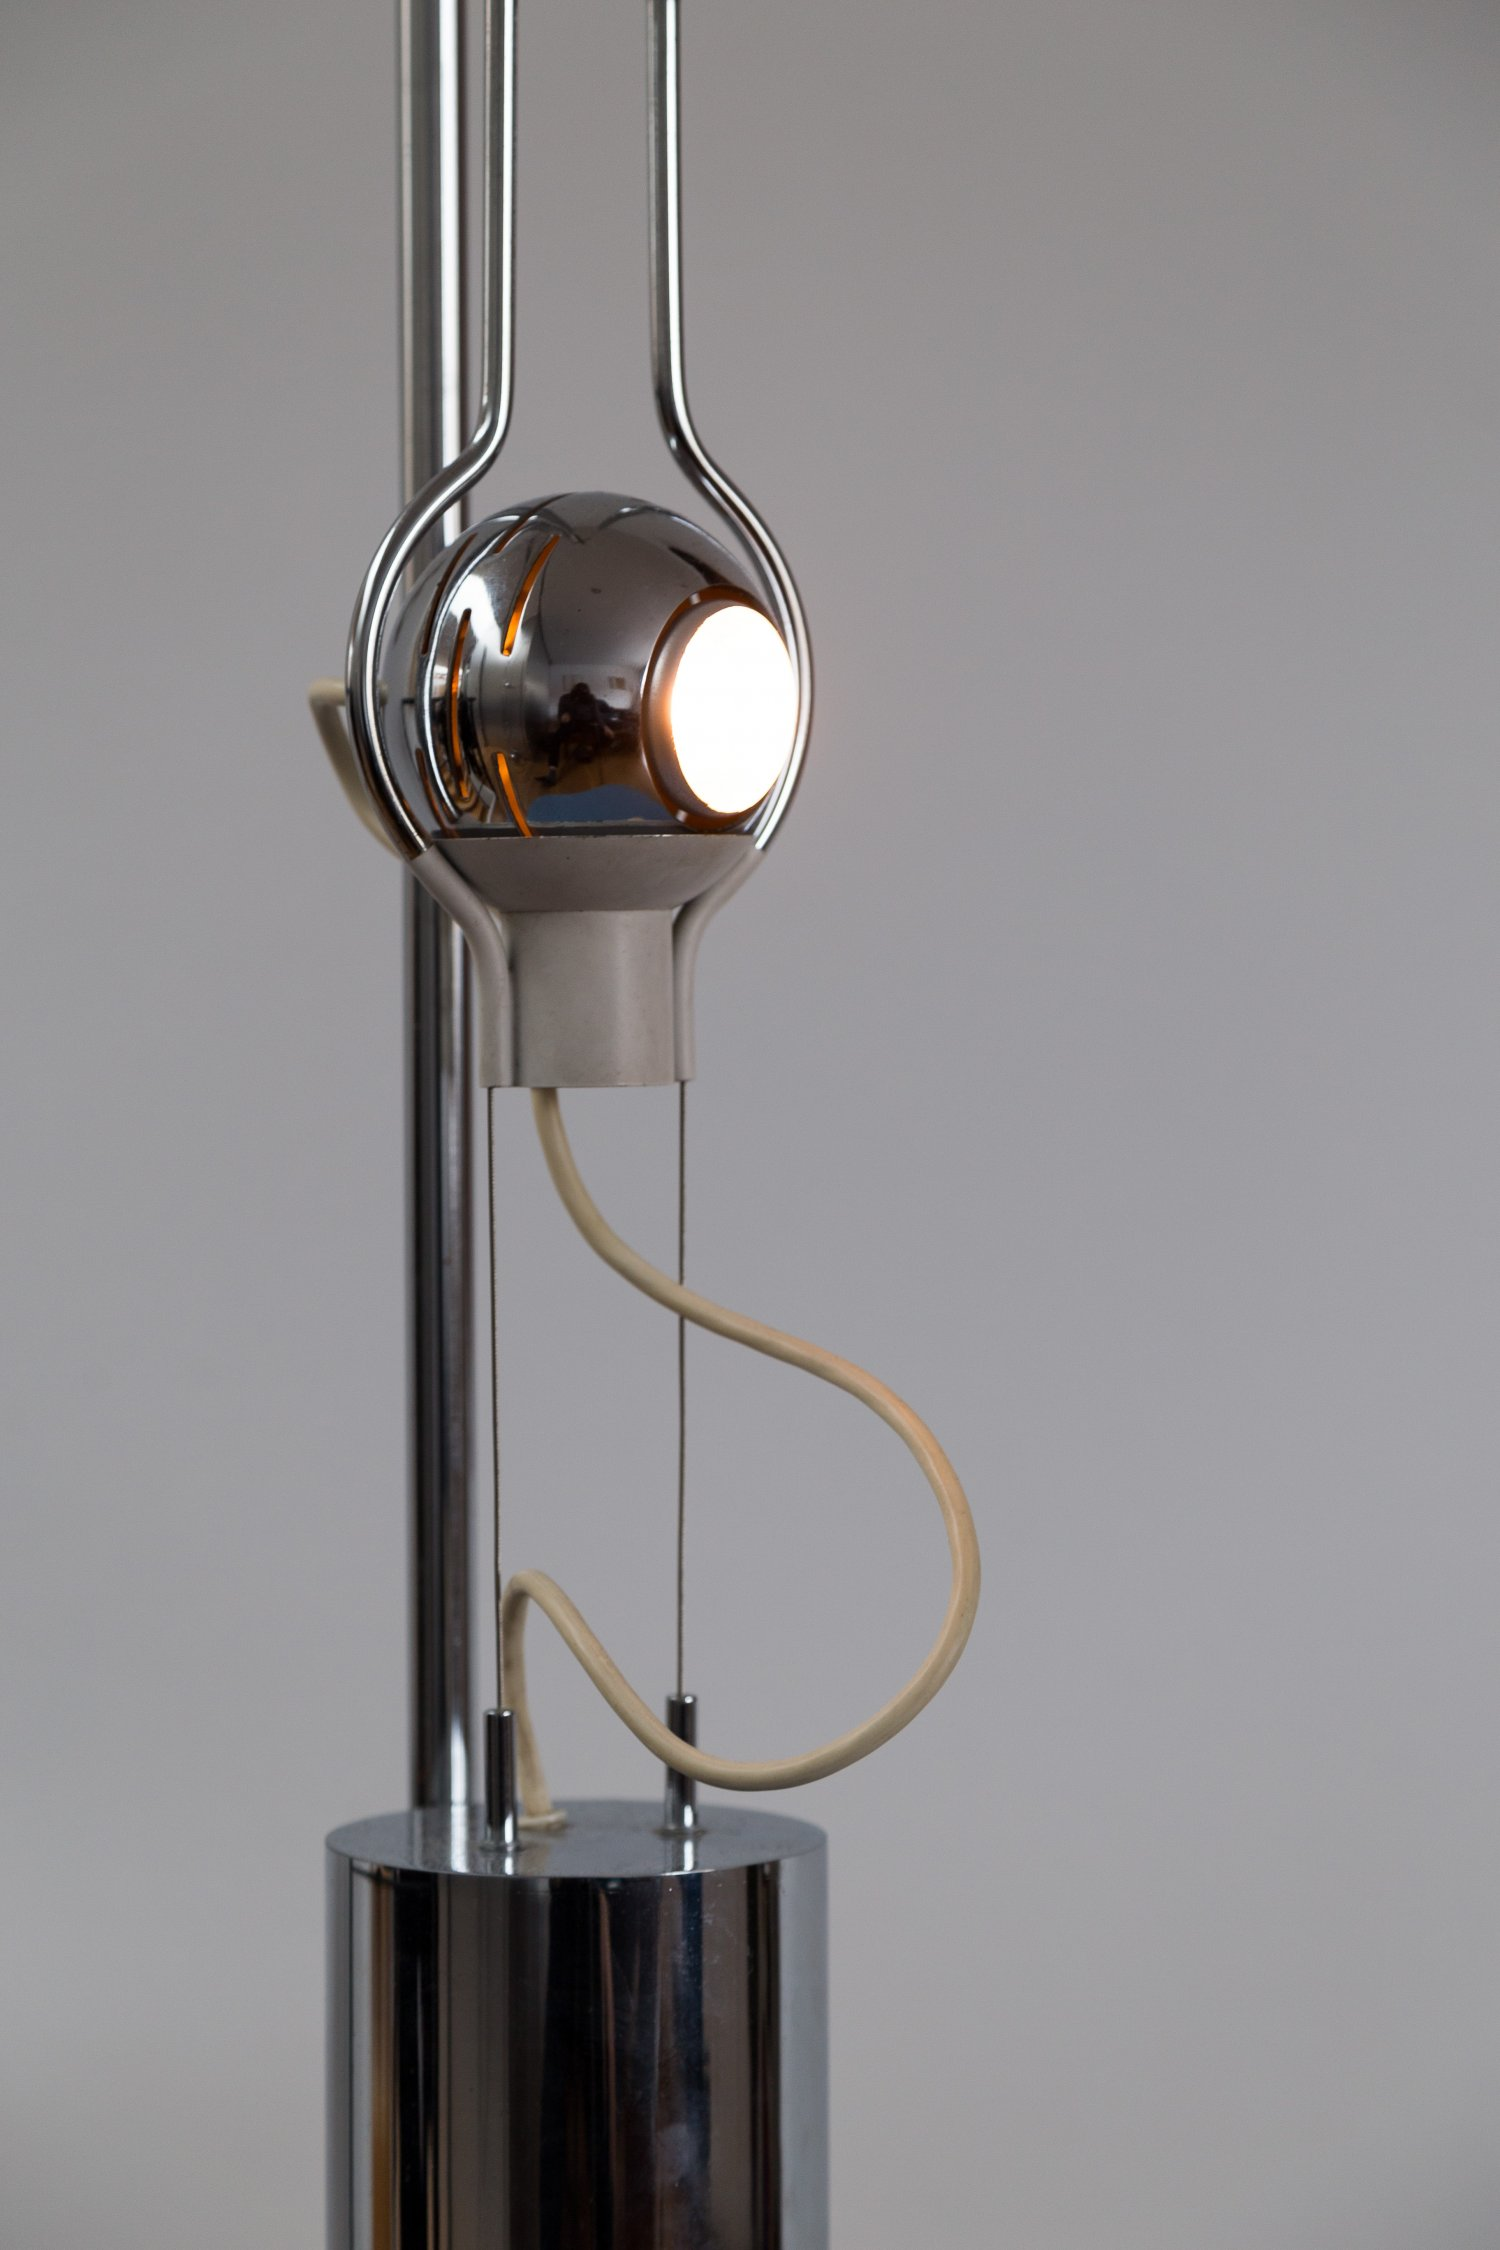 'Filo Sfera' lamp by Angelo Lelii for Arredoluce